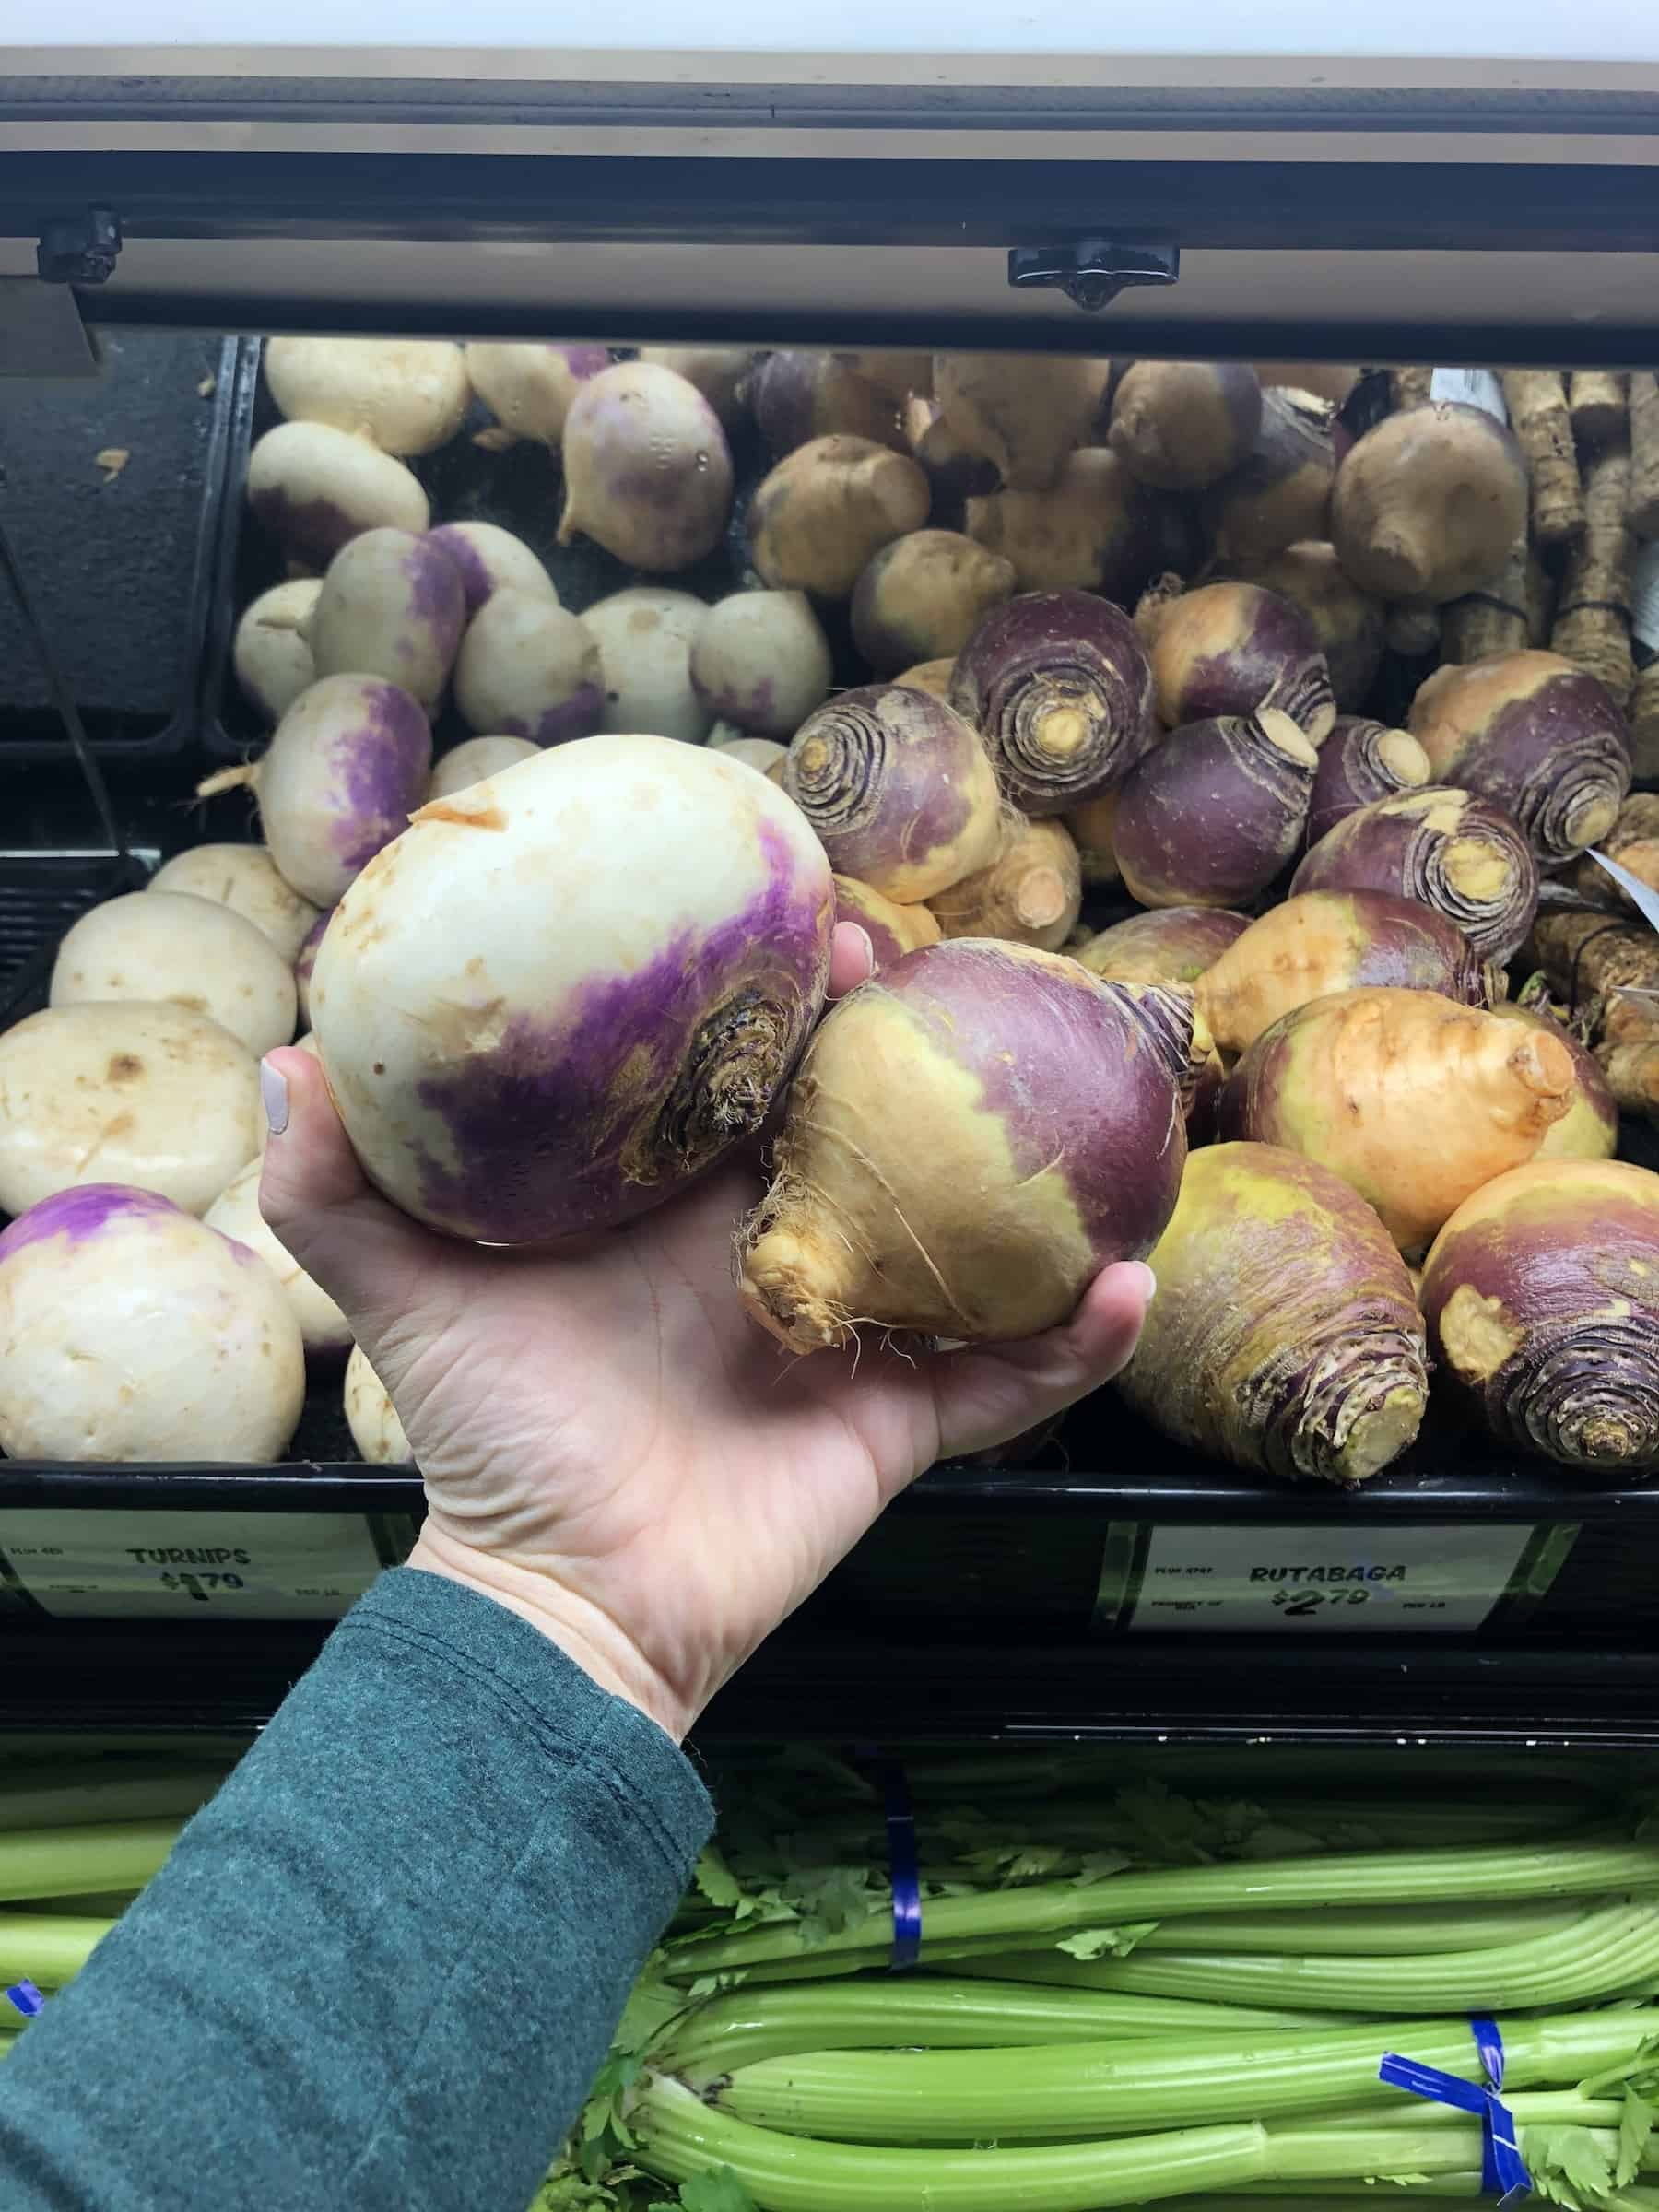 turnips and rutabagas being held in a hand at a grocery store